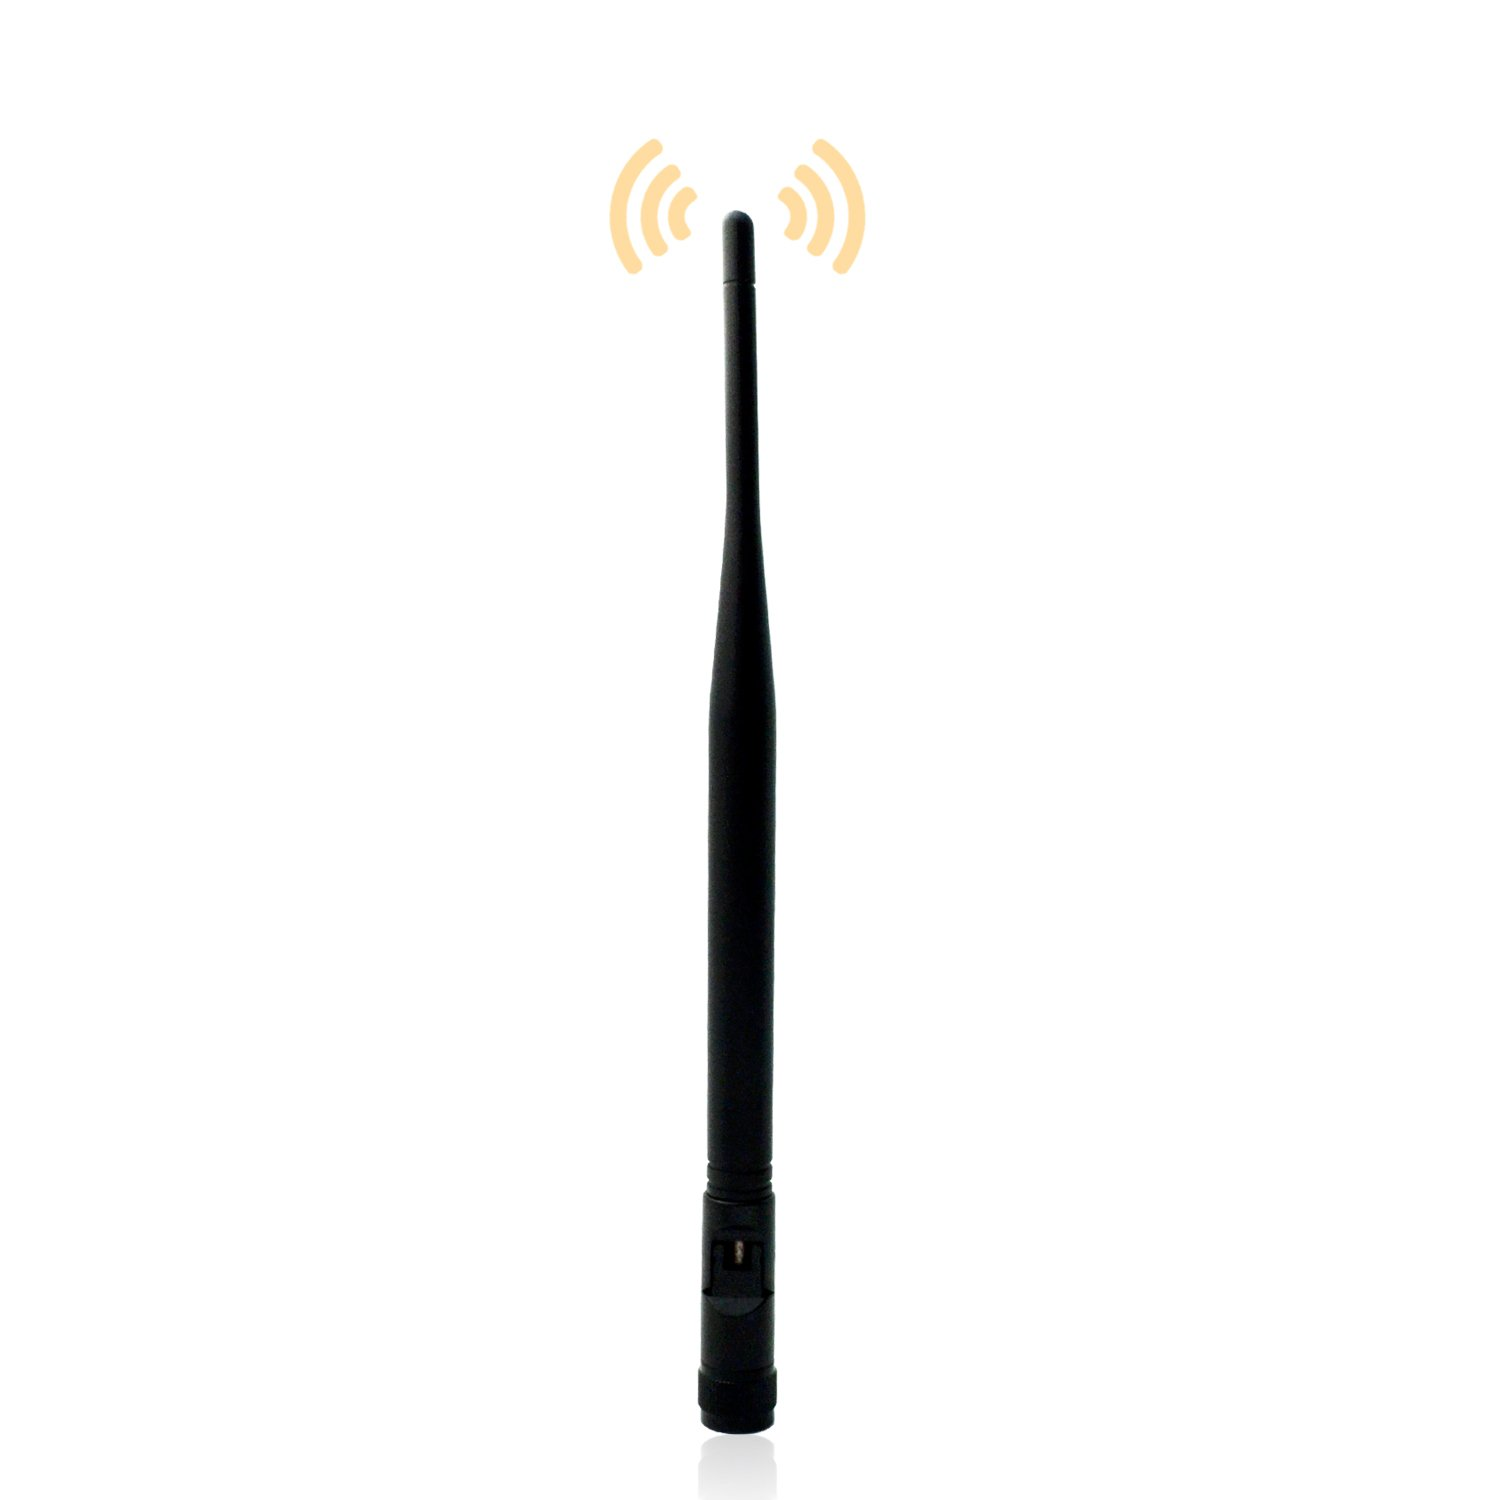 5dB 5dB Antenna for Car Camera /& Monitor Universal